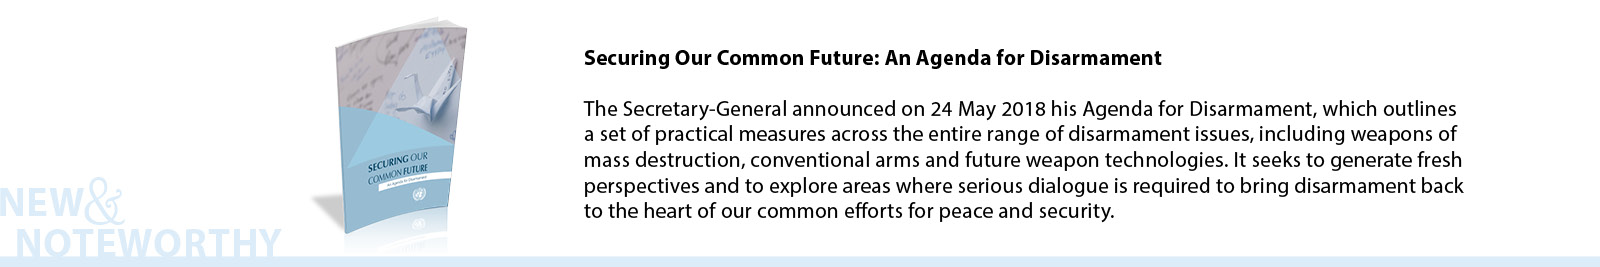 Securing Our Common Future: An Agenda for Disarmament - The Secretary-General announced on 24 May 2018 his Agenda for Disarmament, which outlines a set of practical measures across the entire range of disarmament issues, including weapons of mass destruction, conventional arms and future weapon technologies. It seeks to generate fresh perspectives and to explore areas where serious dialogue is required to bring disarmament back to the heart of our common efforts for peace and security.